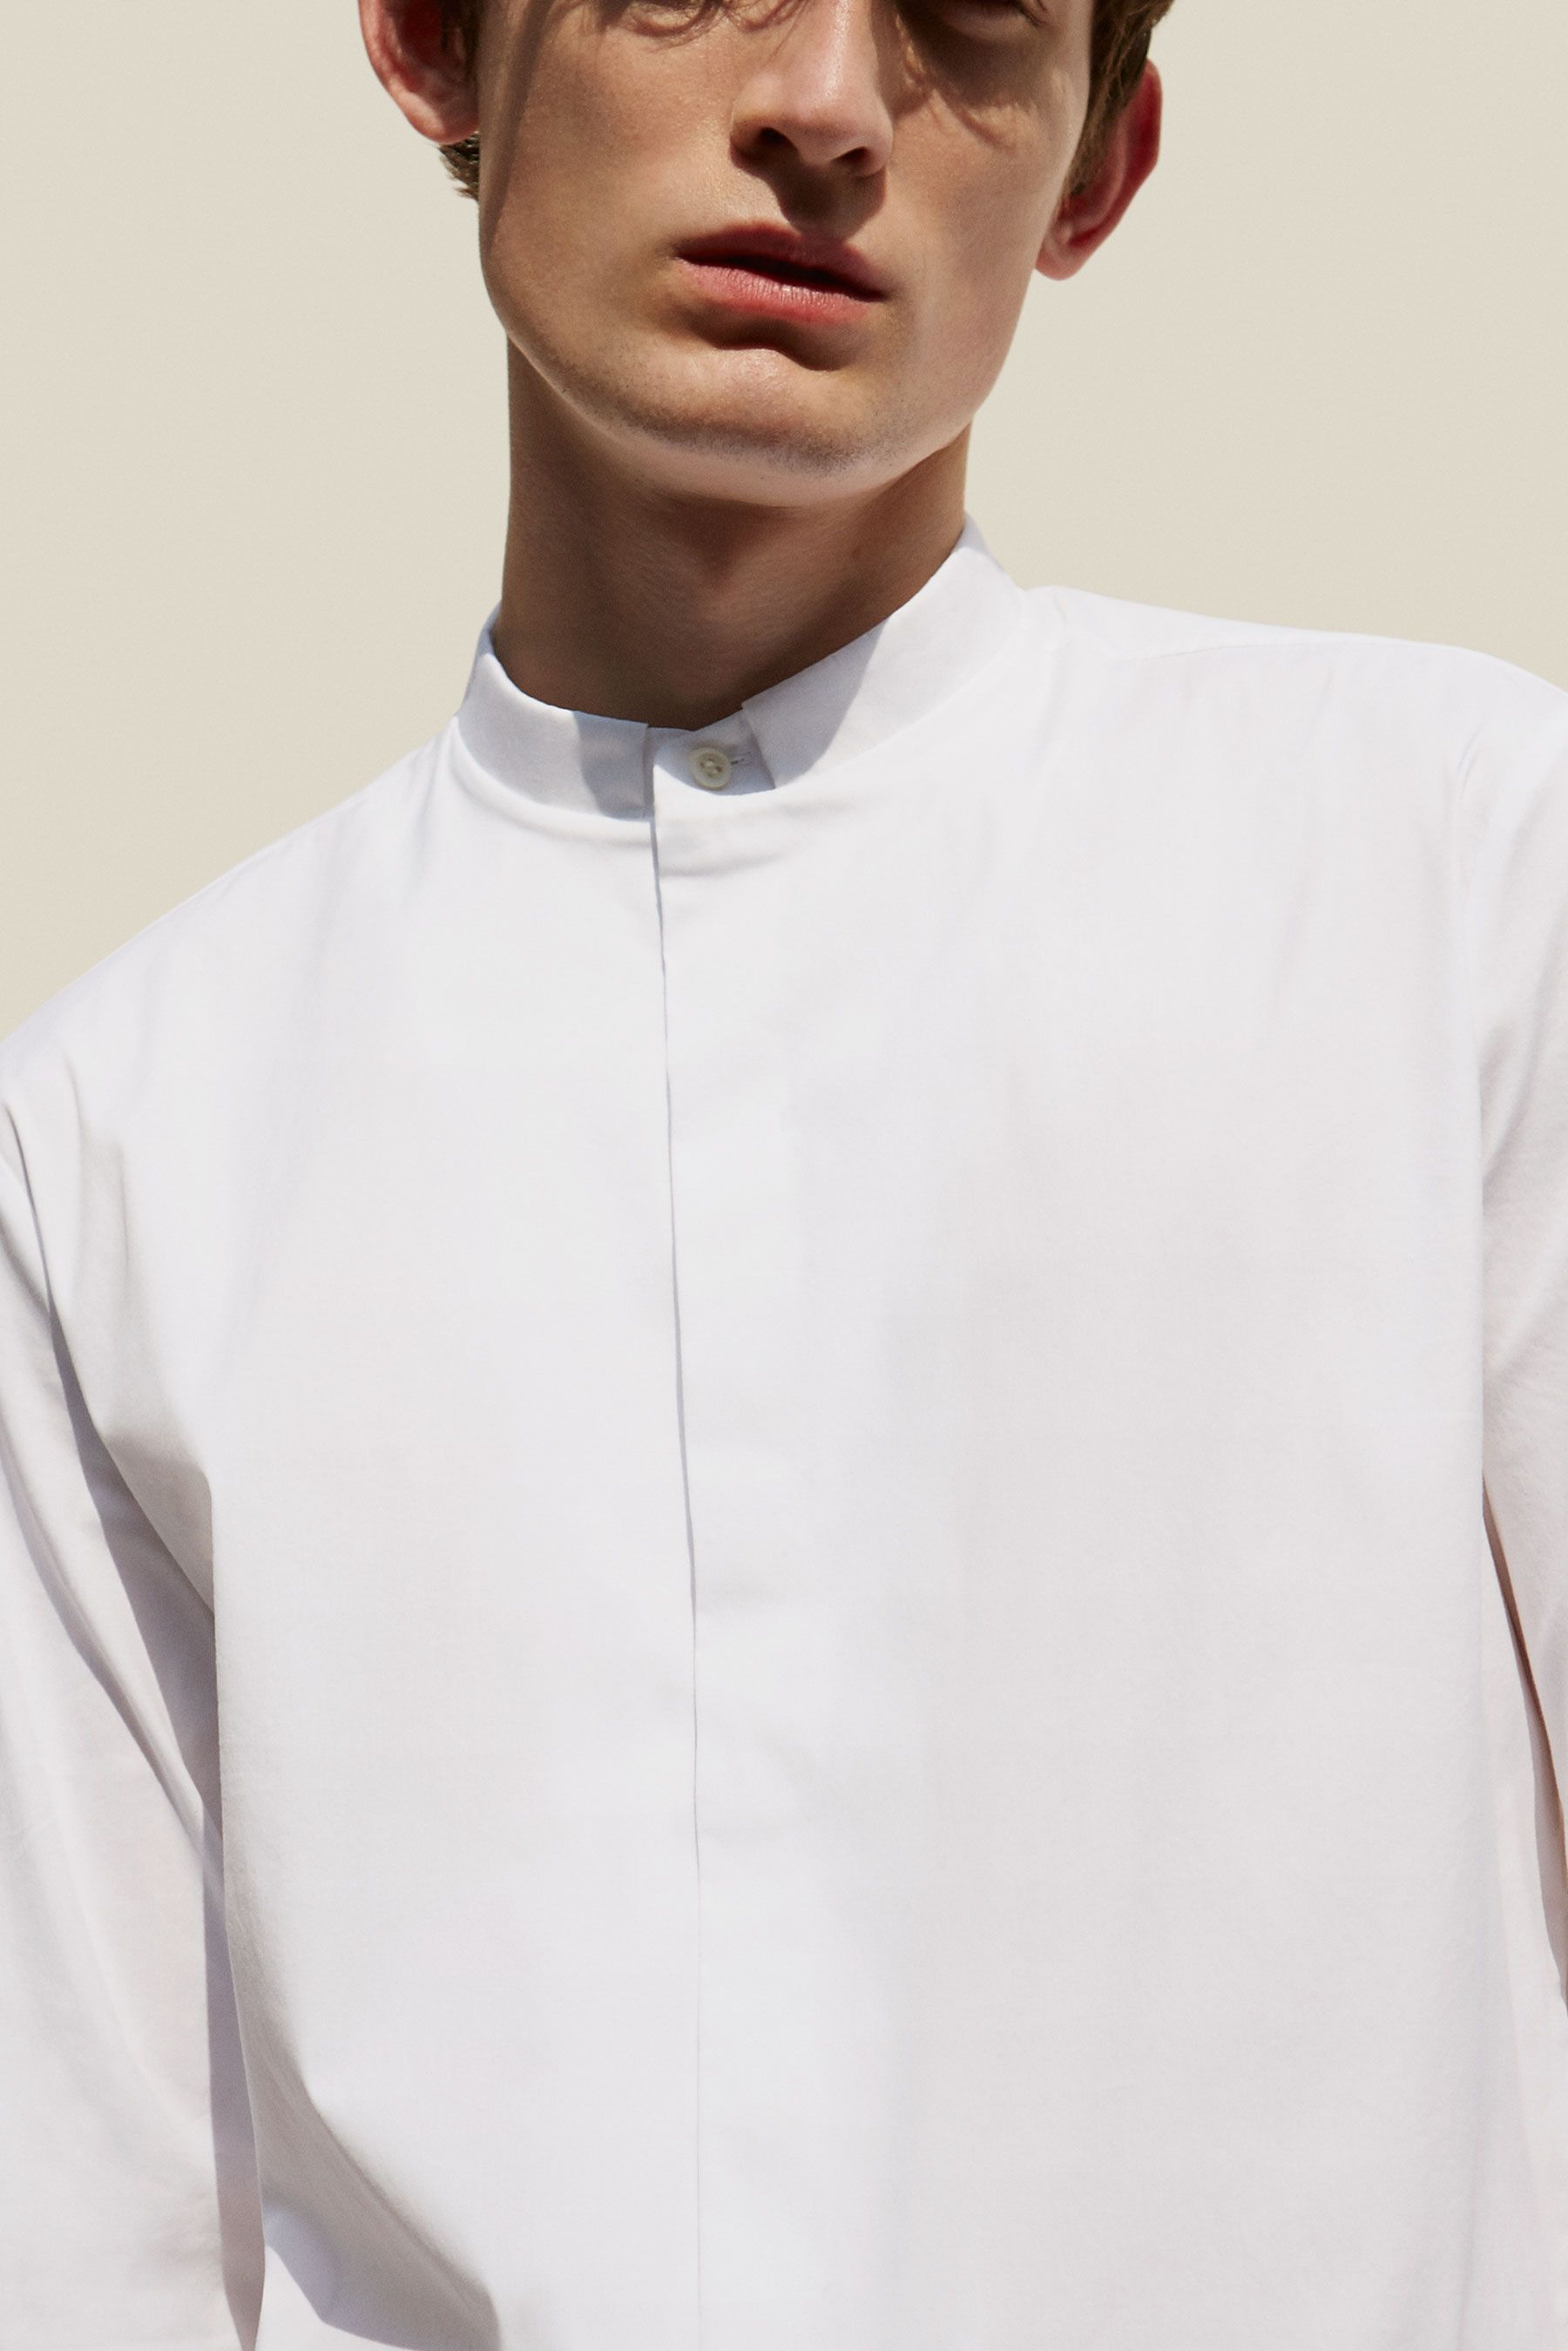 COS | The everyday shirt, reinvented | White shirt outfits